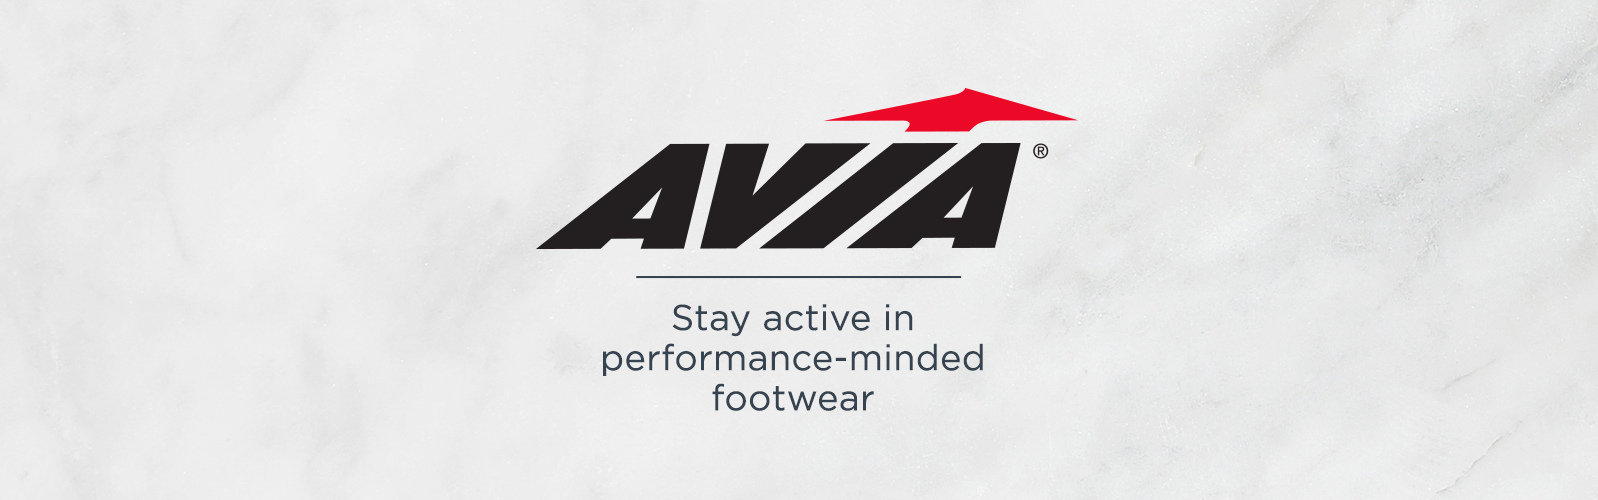 Avia -- Stay active in performance-minded footwear